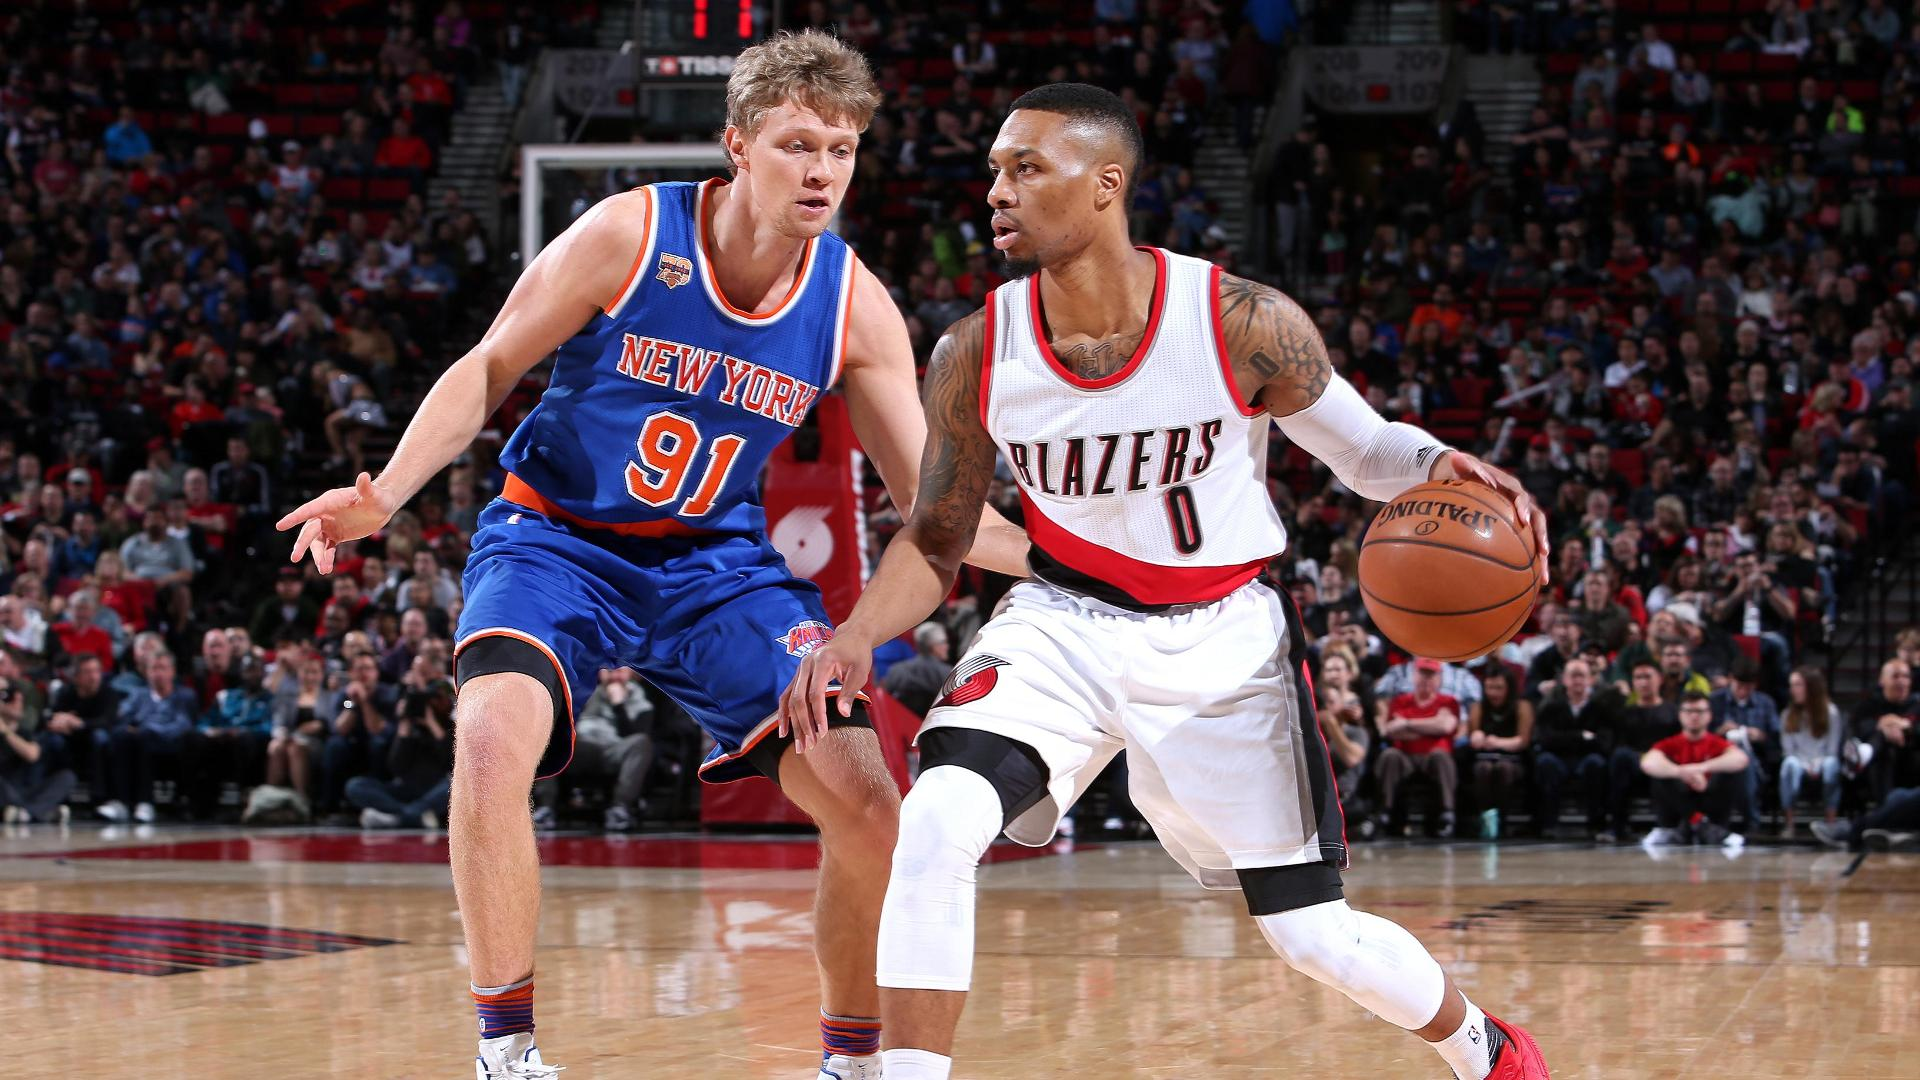 Lillard drops 30 in Blazers' victory over Knicks